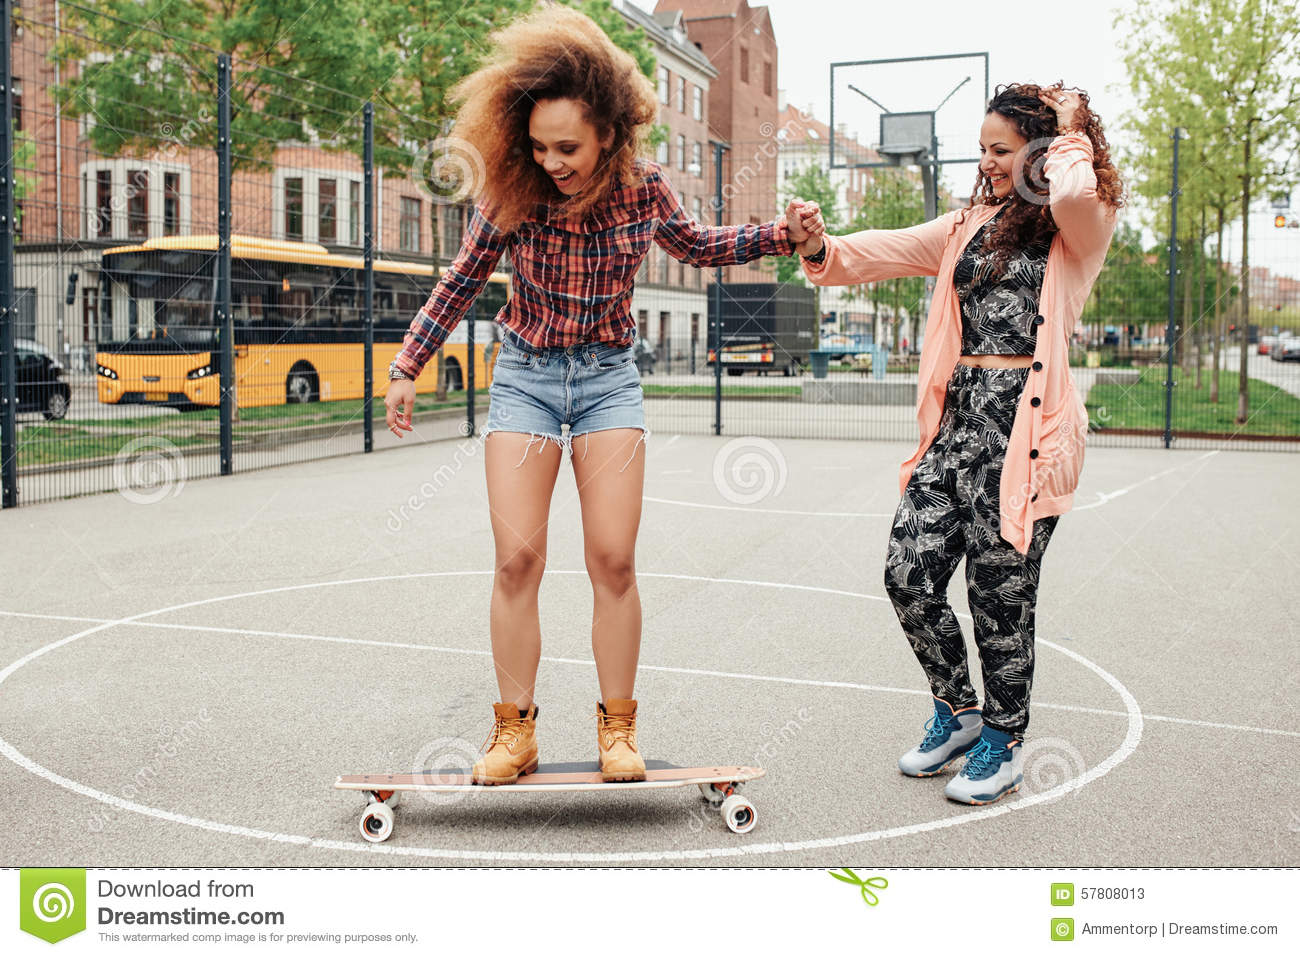 Woman Learning To Ride Skateboard Stock Image - Image of ...